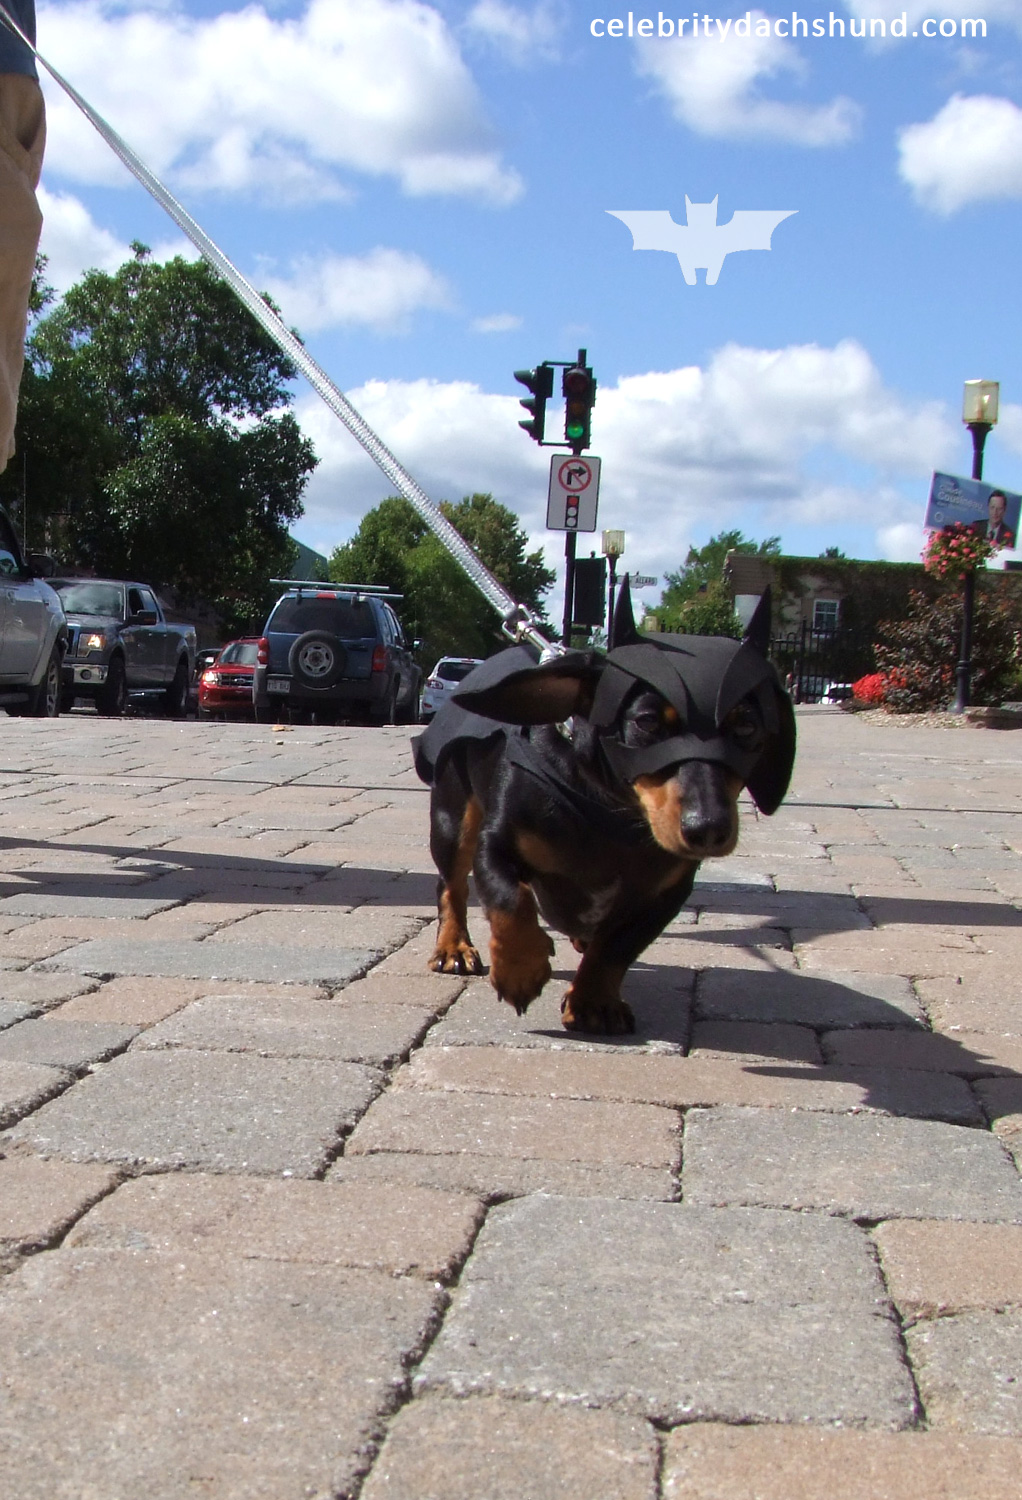 wiener dog bat dachshund walking down street